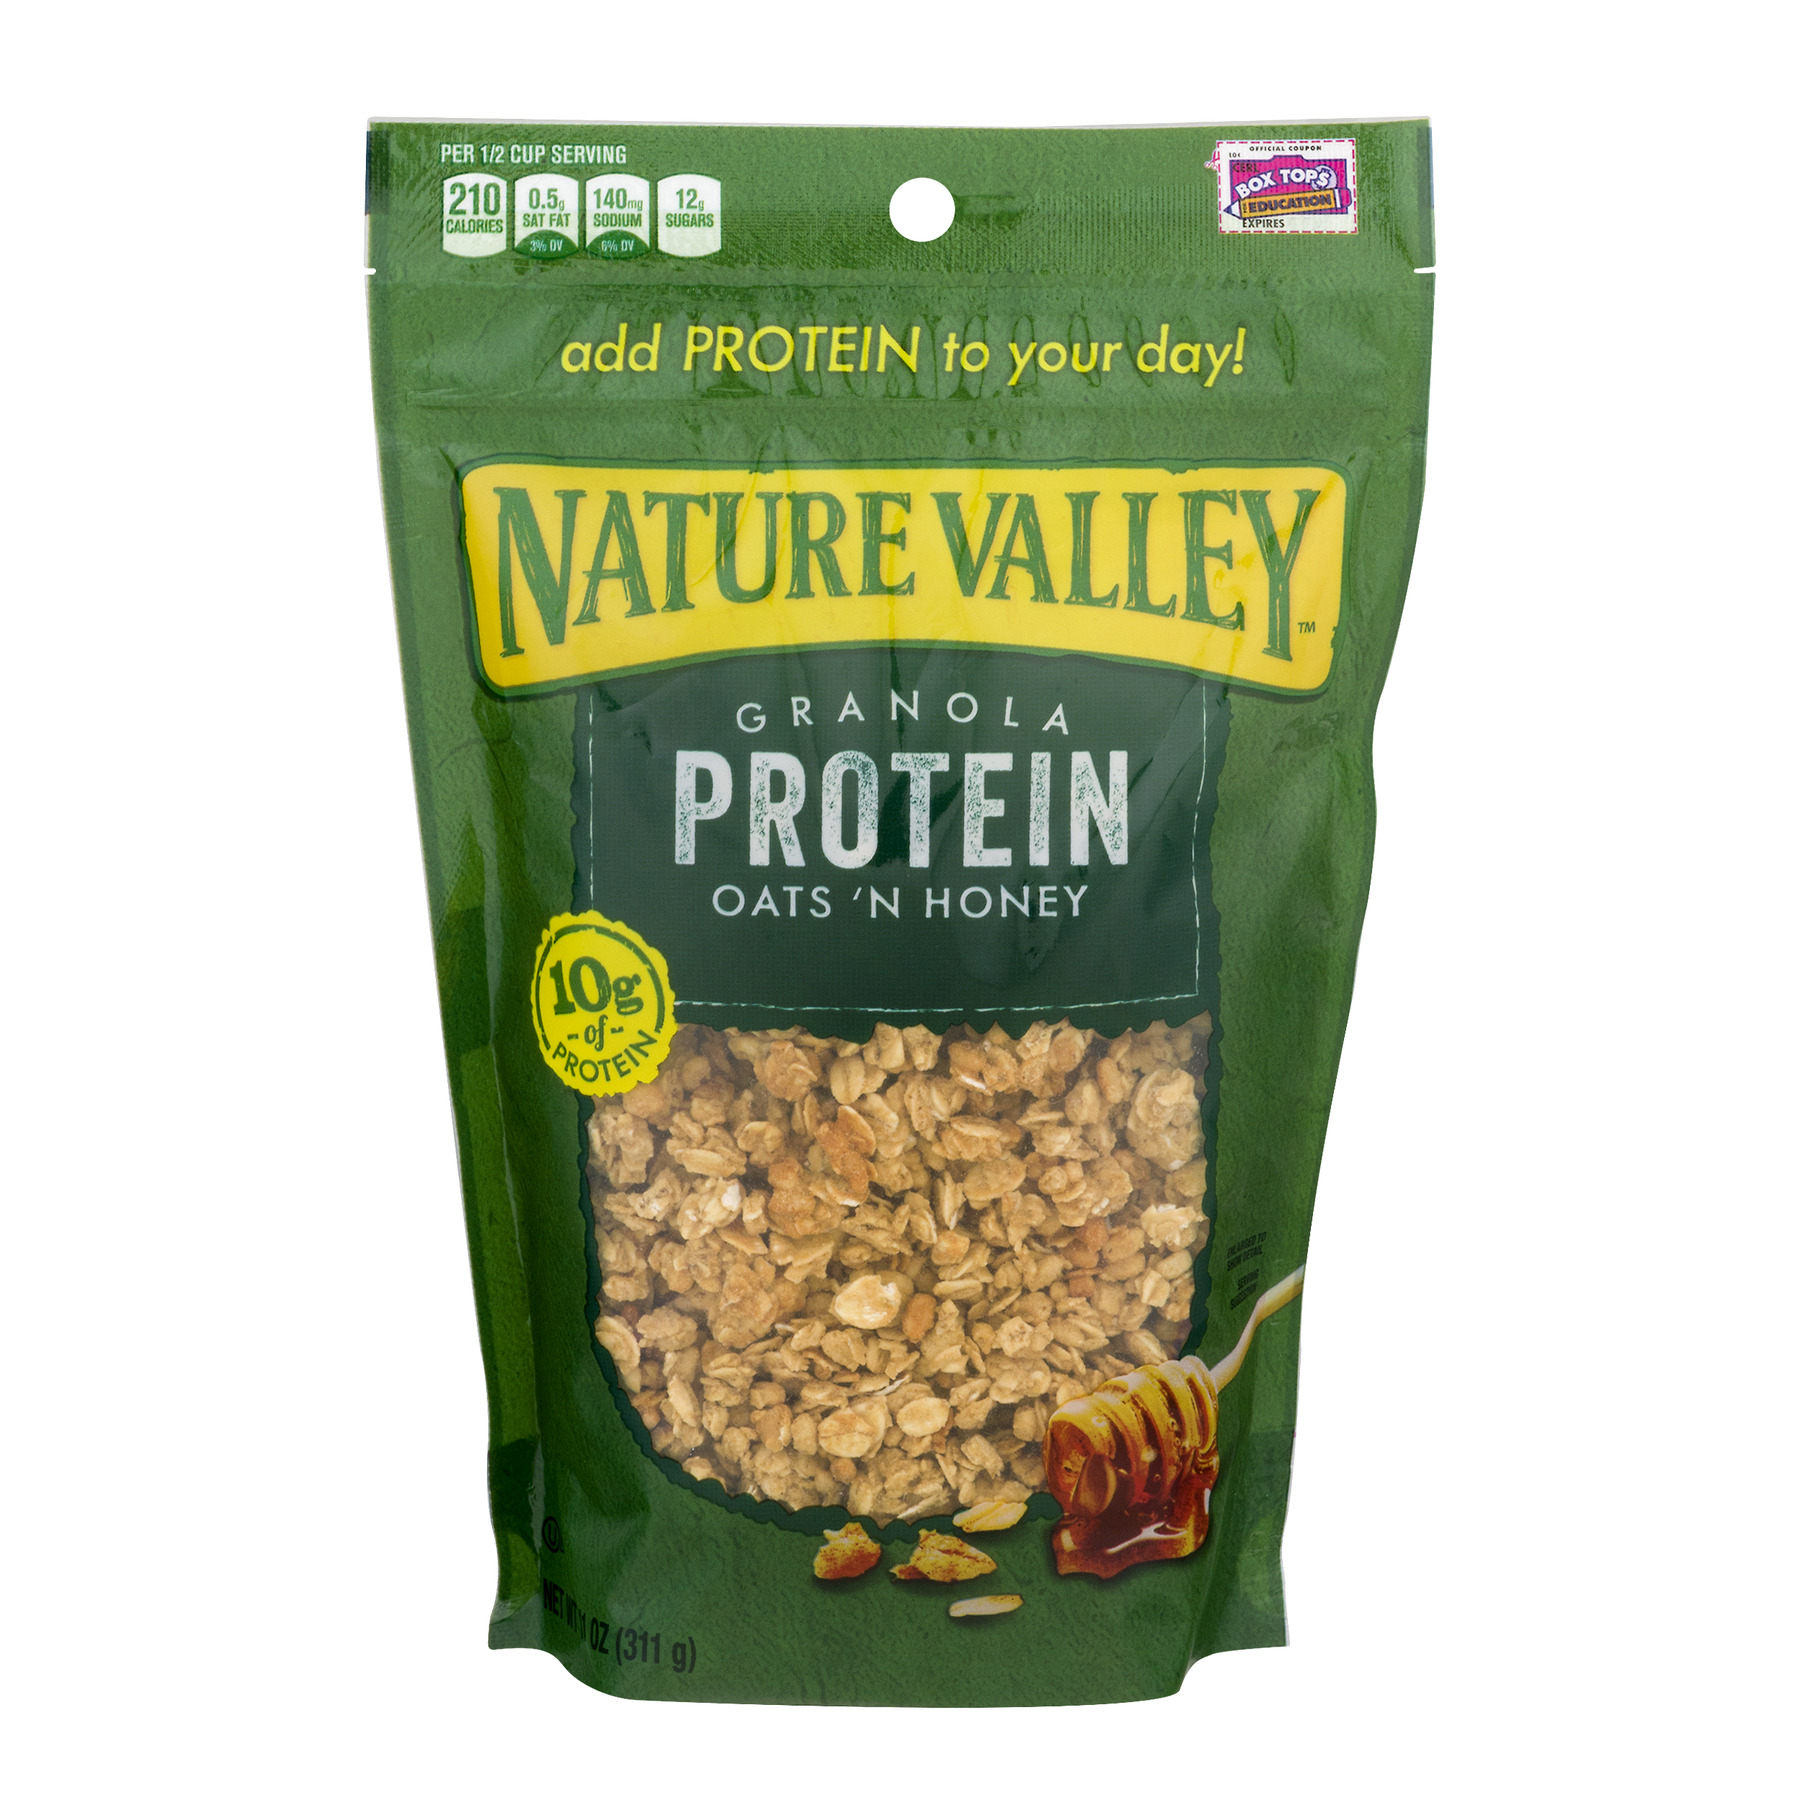 (2 Pack) Nature Valley Granola, Protein, Oats N' Honey, Crunchy Granola Bag, 11 oz